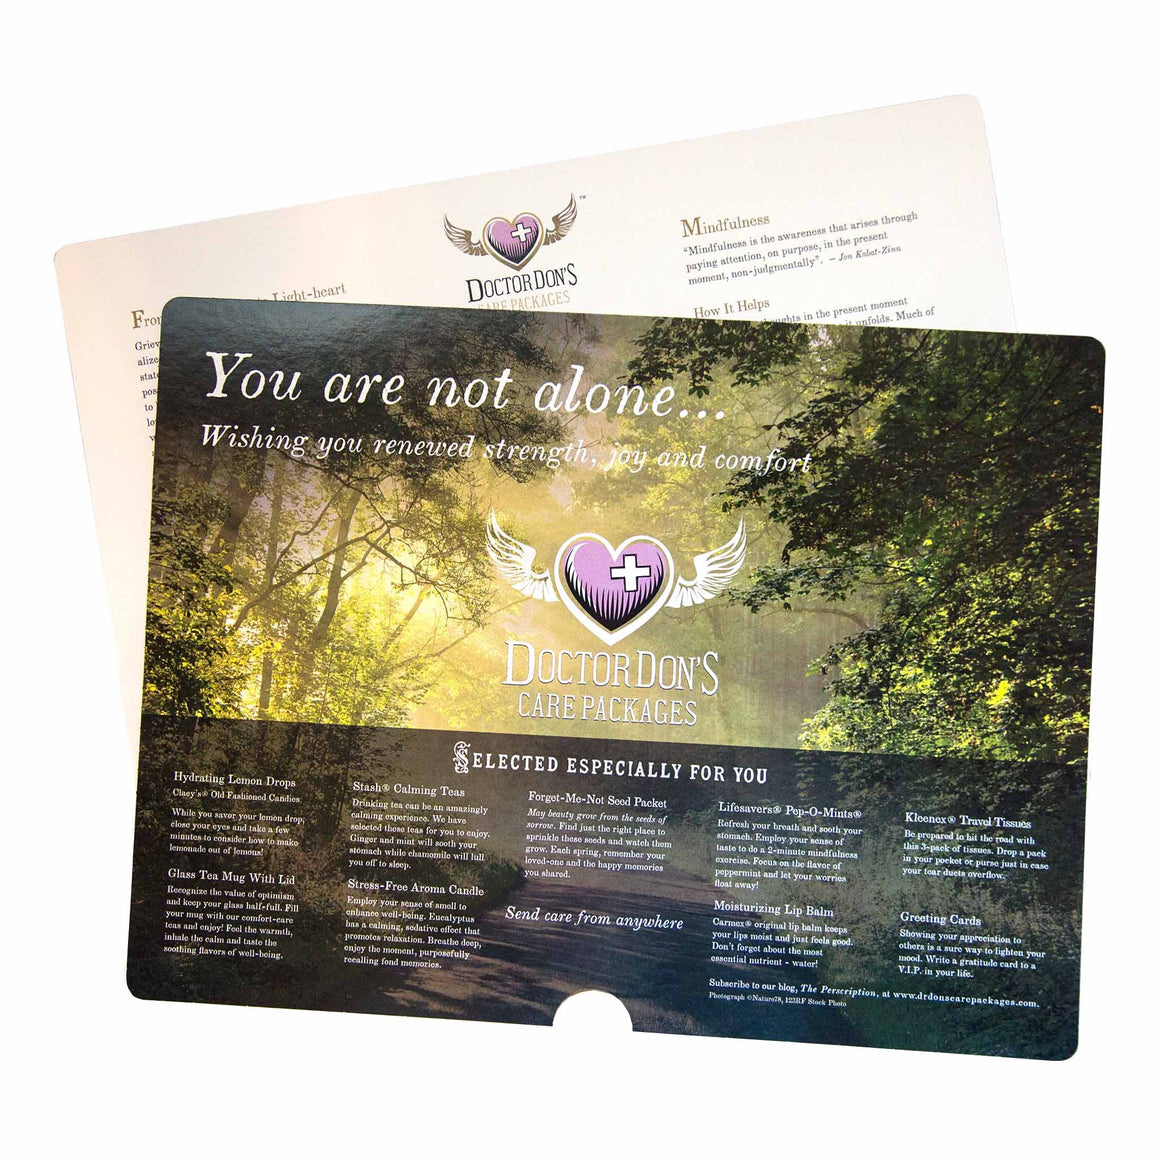 Wellness Tips product image - included with Dr. Don's Care Packages Sympathy Condolence Care Package.